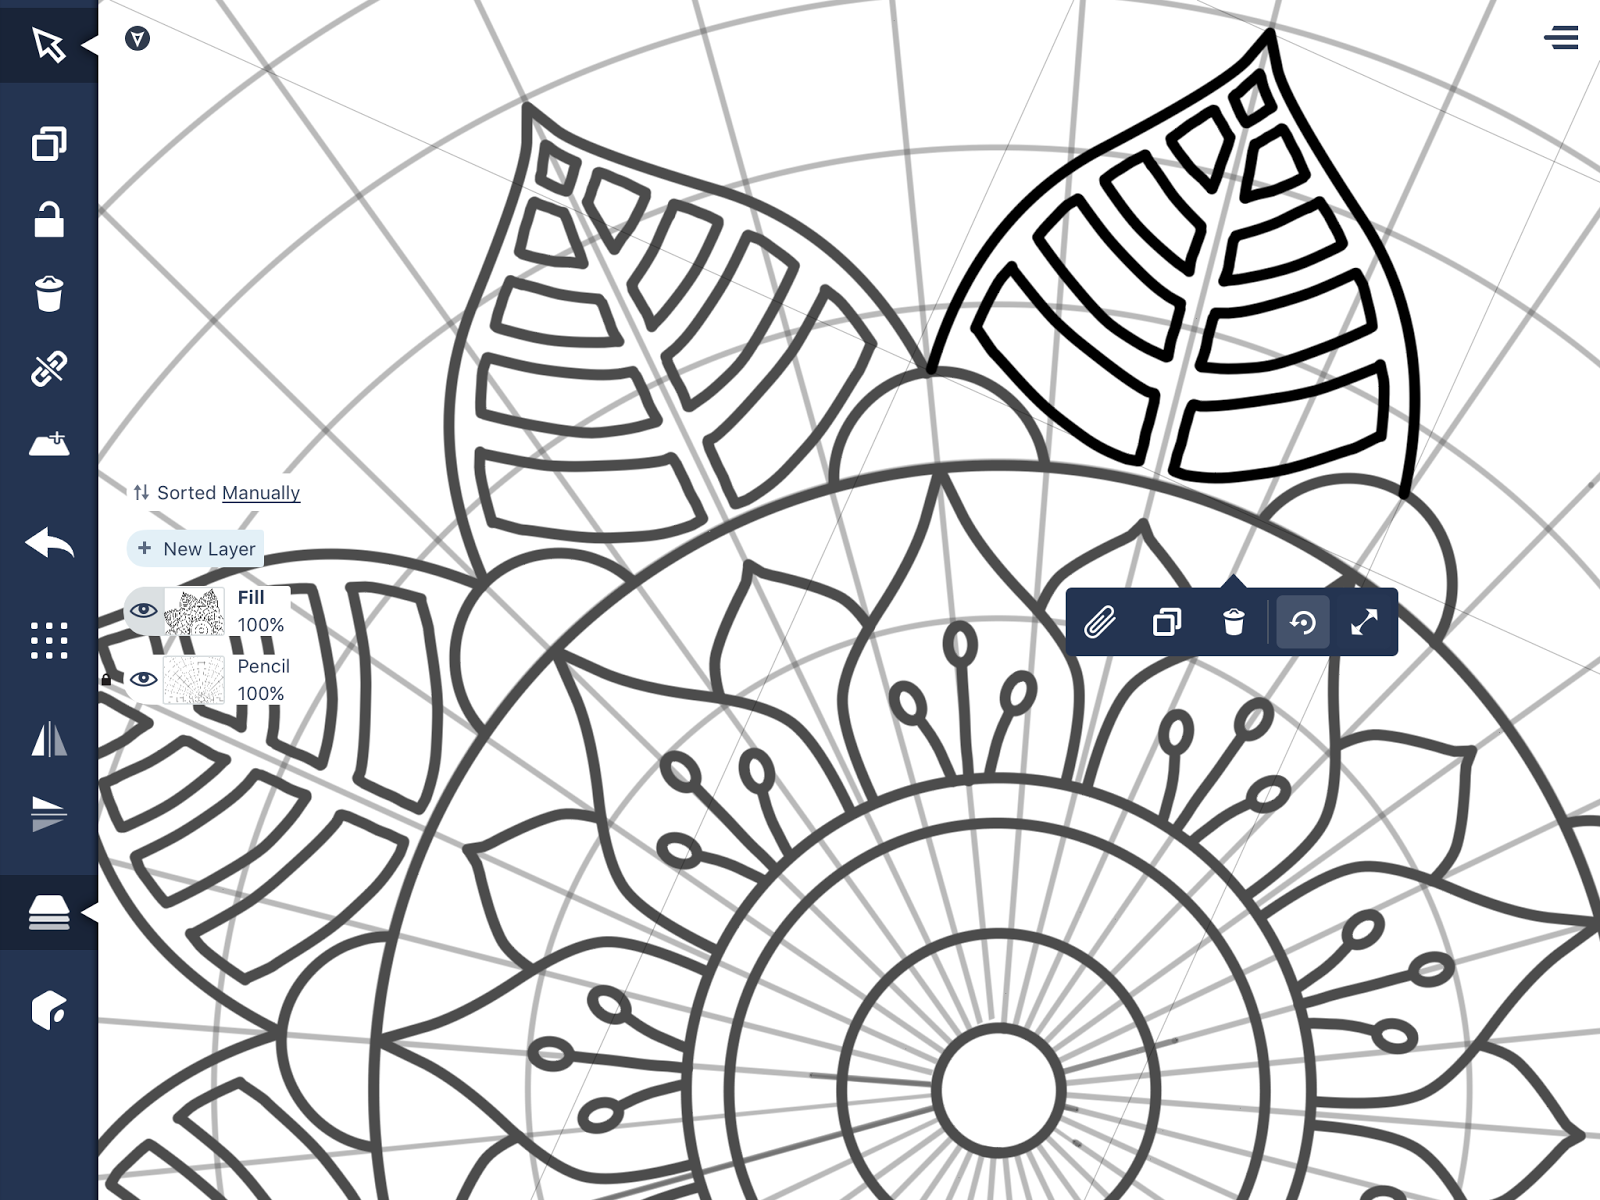 When Duplicating Sections Of Your Mandala Make Sure The Stretch Scale Button Is Turned Off